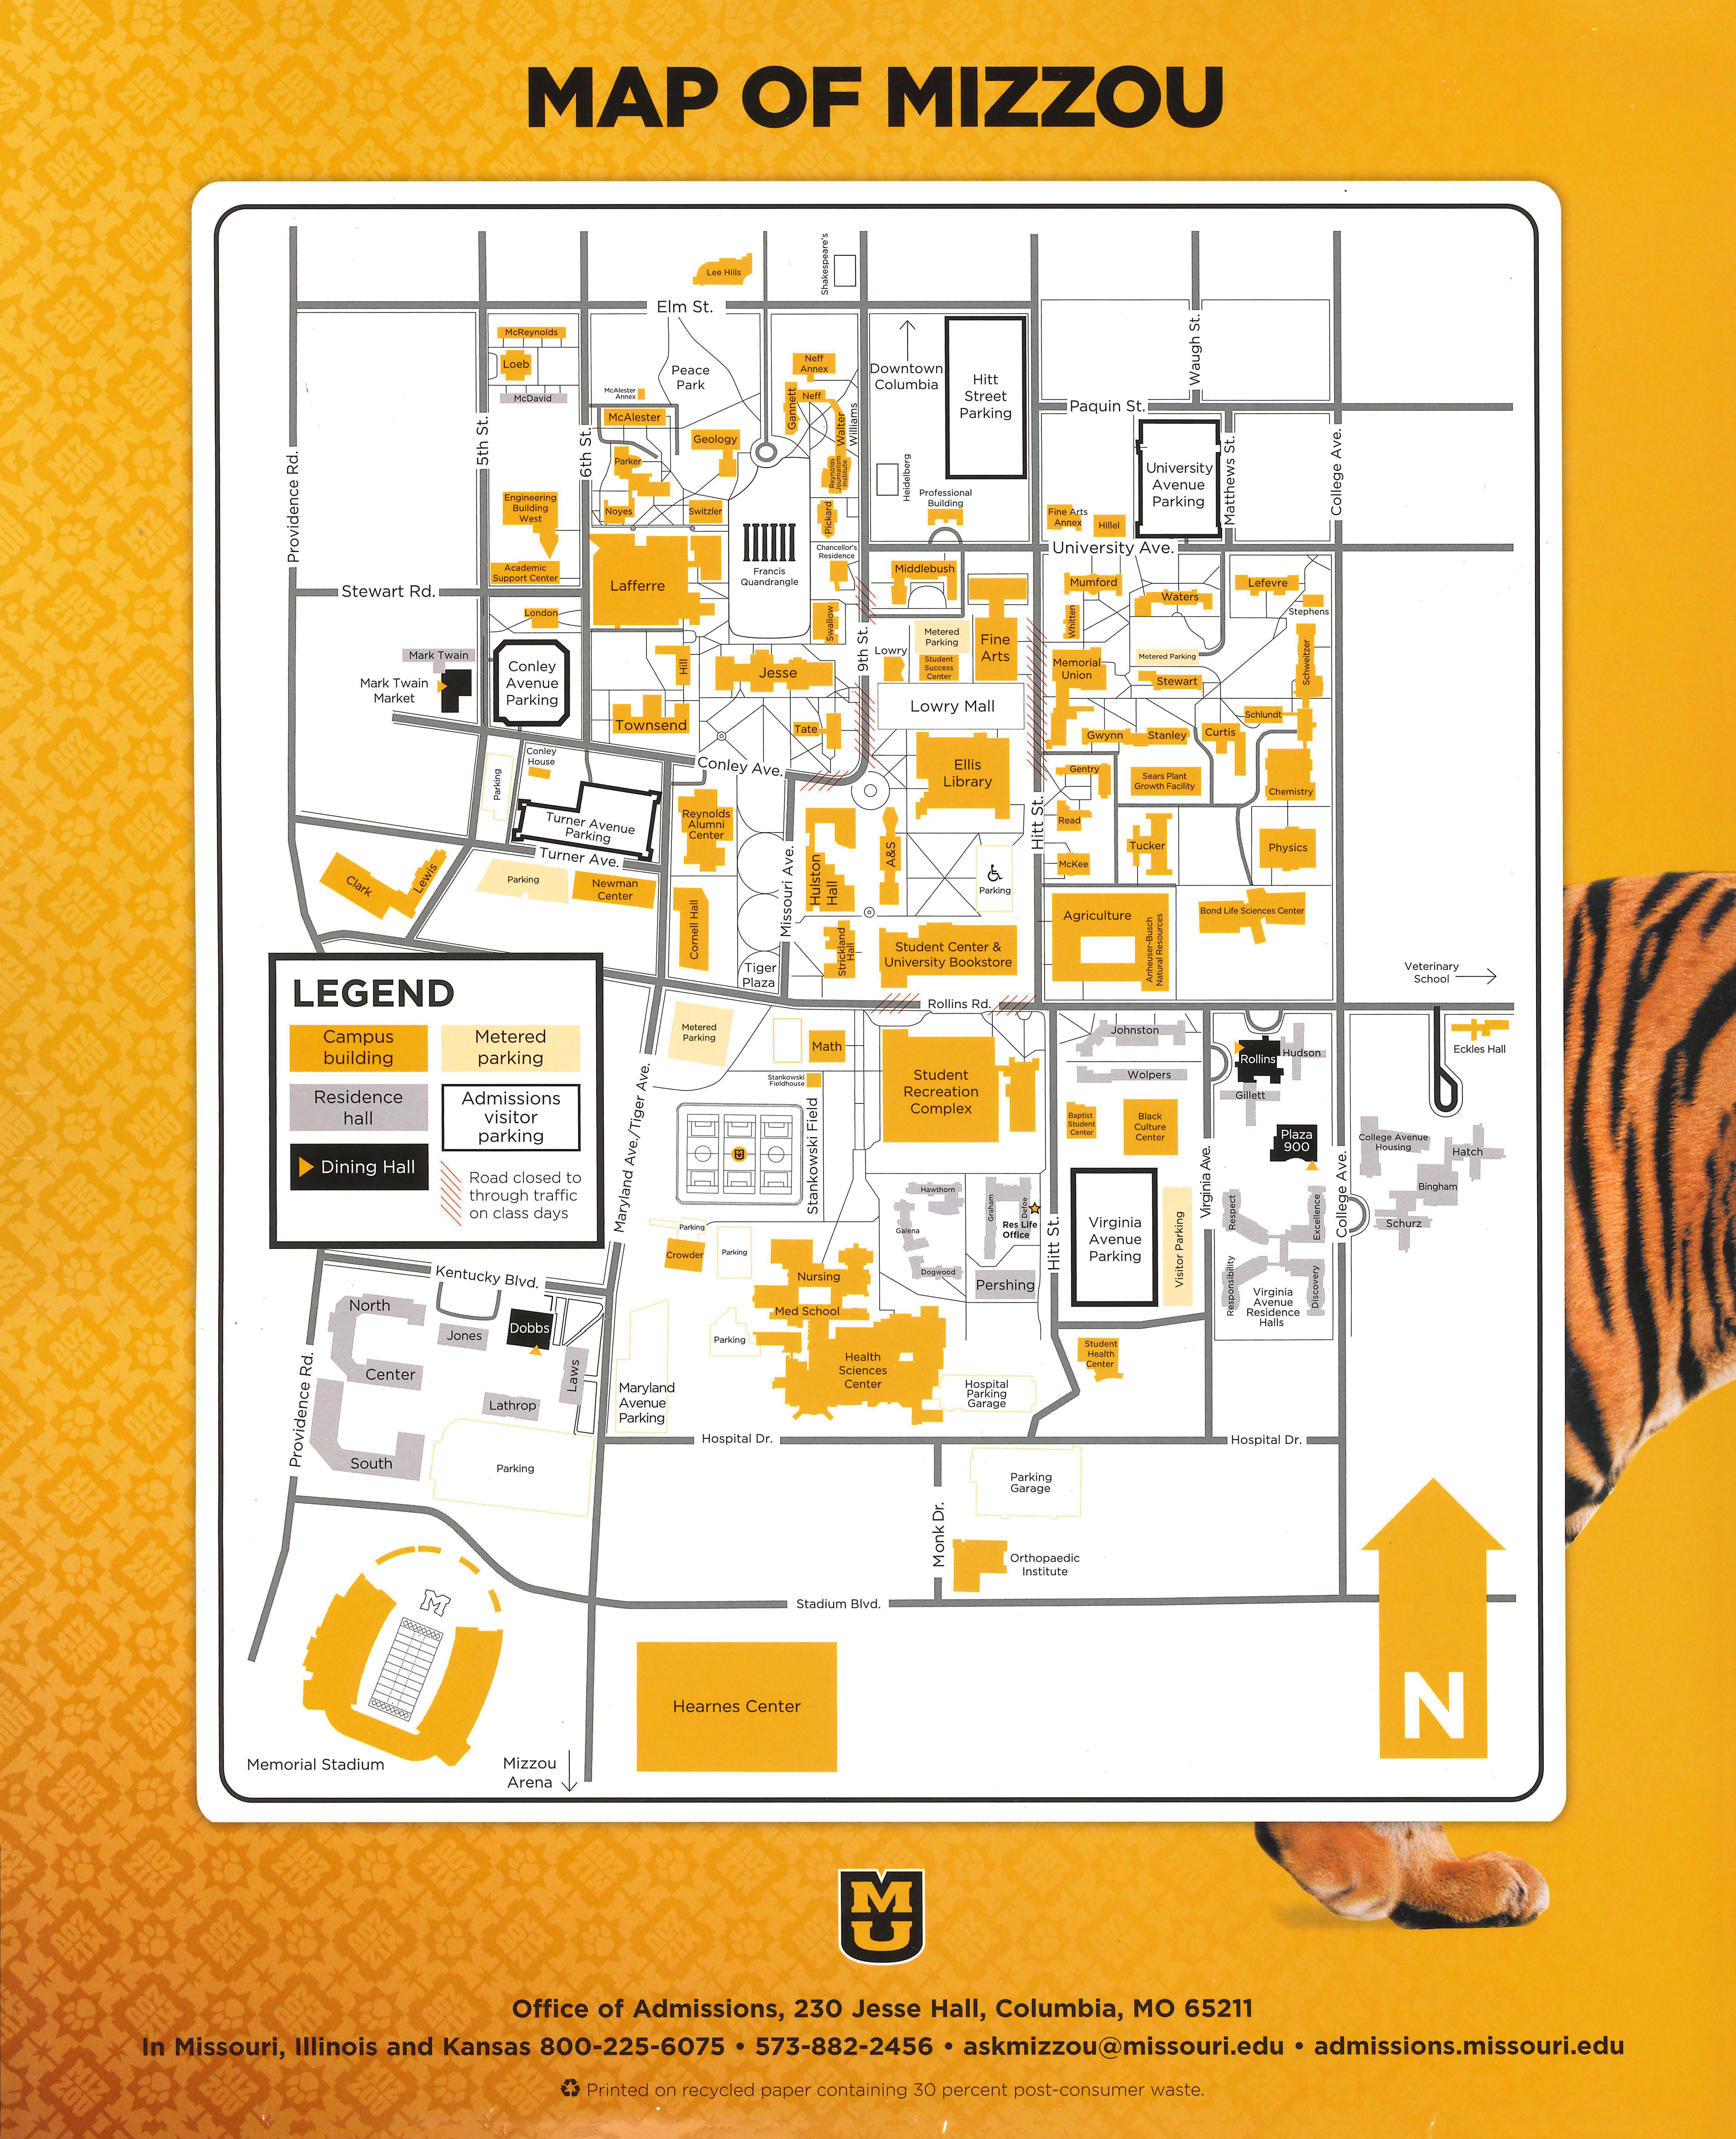 map of mizzou campus Map Of Mizzou map of mizzou campus